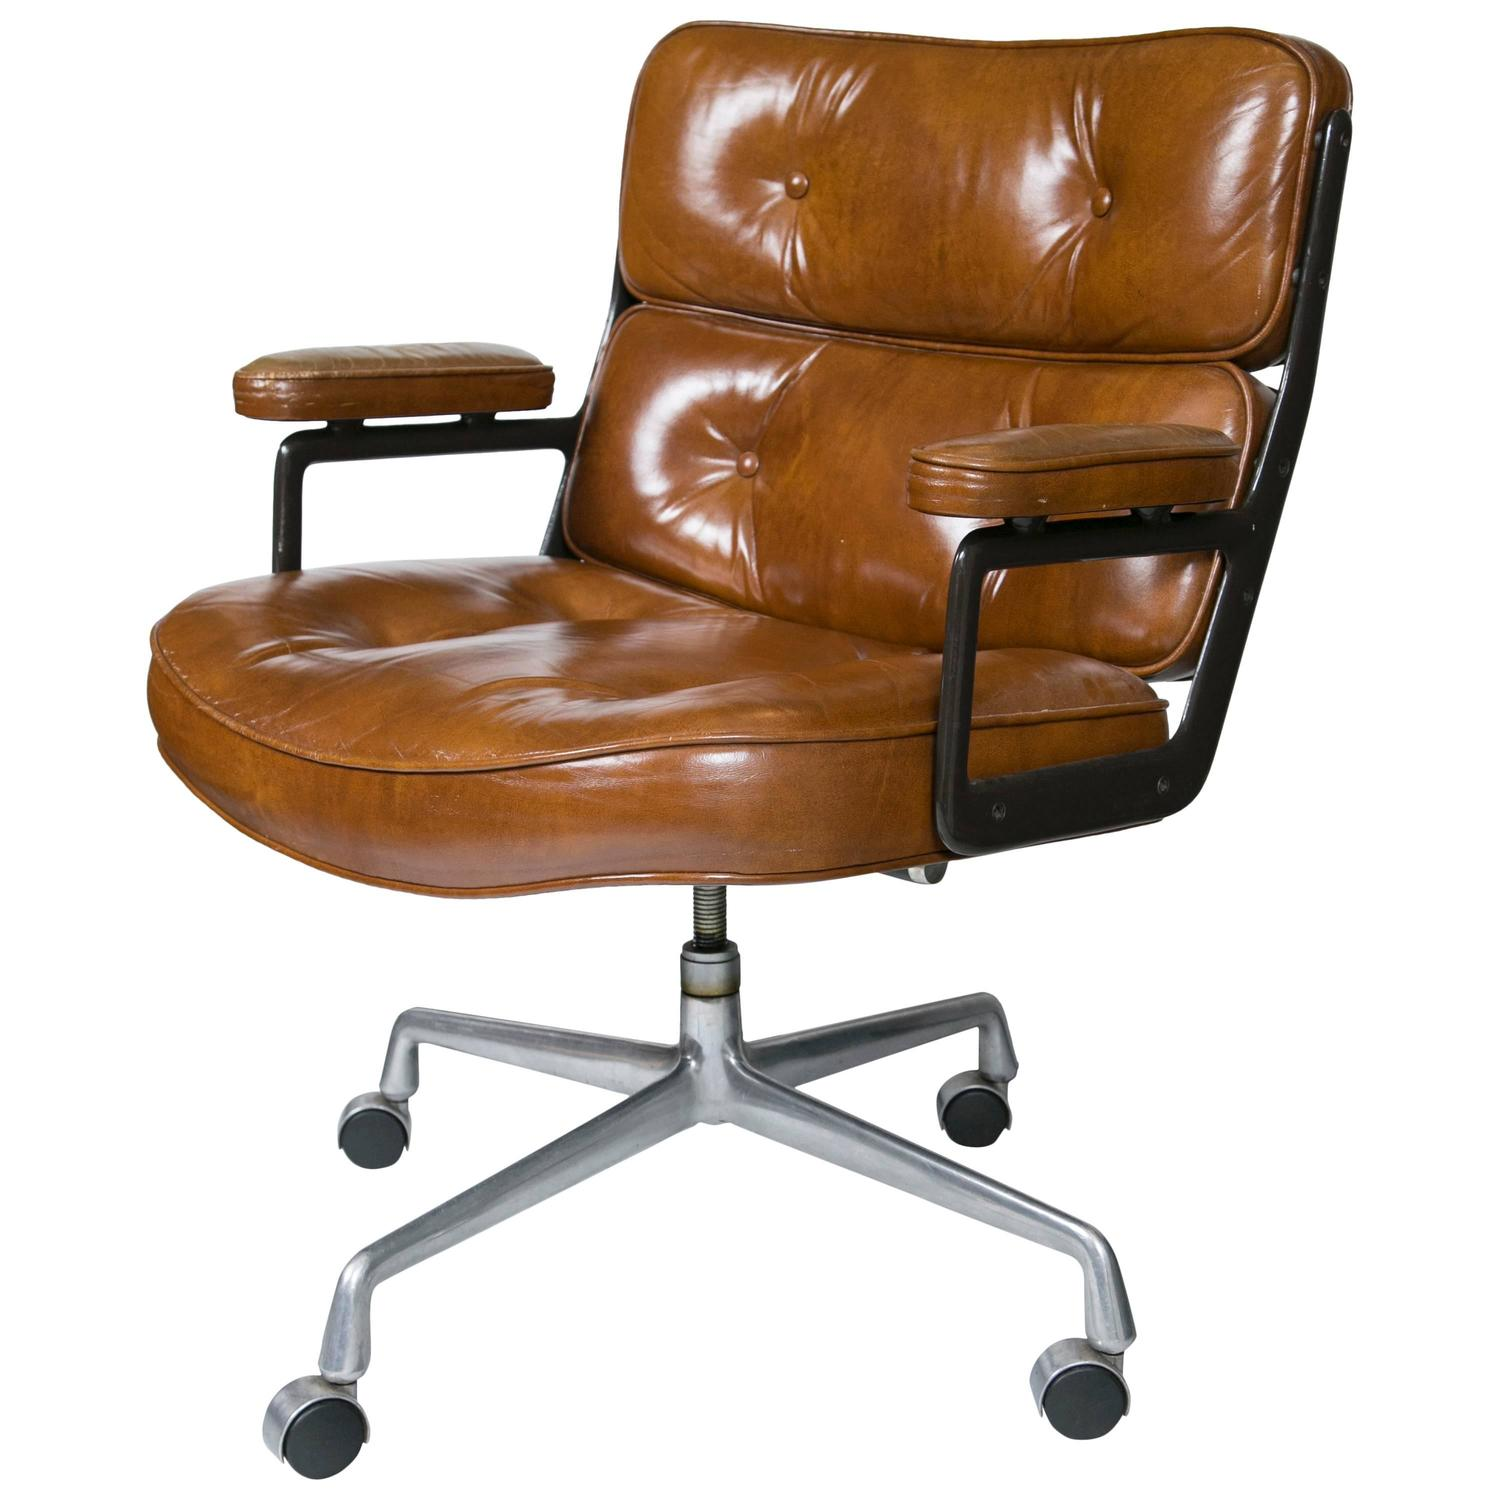 Eames executive chair by herman miller at 1stdibs - Herman miller chair eames ...